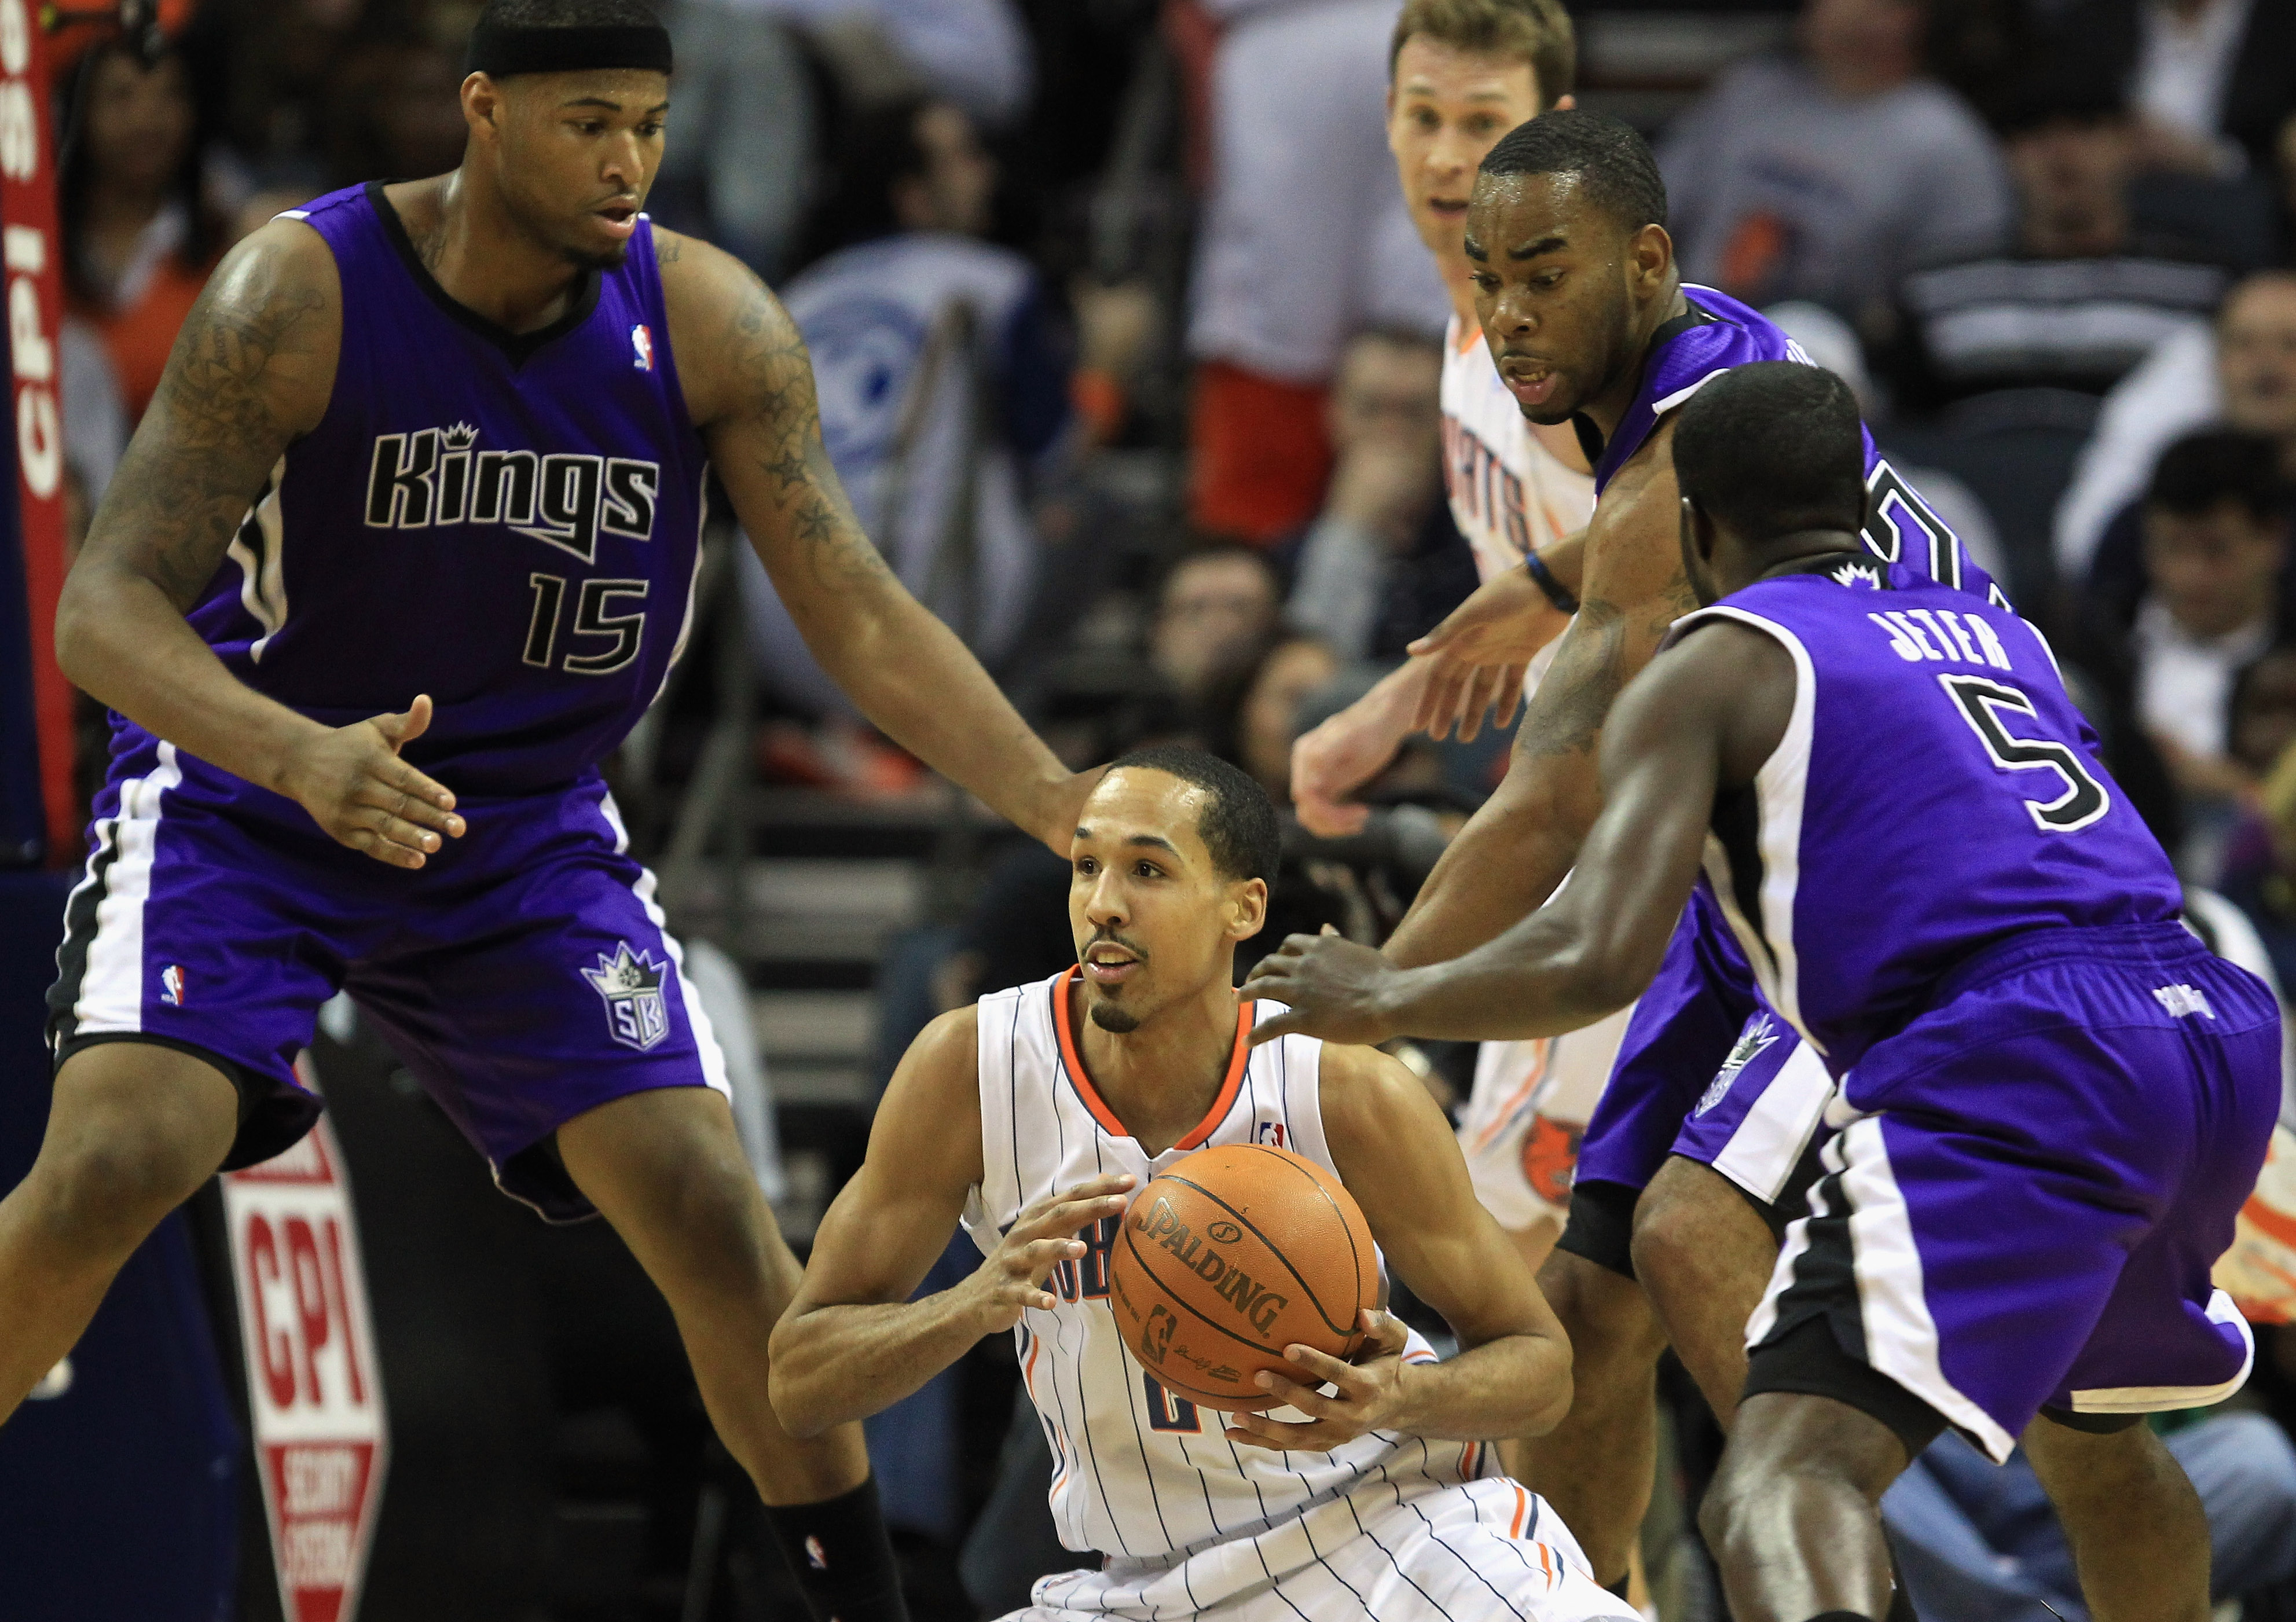 CHARLOTTE, NC - FEBRUARY 25:  Eugene Jeter #5 of the Sacramento Kings tries to steal the ball from Shaun Livingston #2 of the Charlotte Bobcats during their game at Time Warner Cable Arena on February 25, 2011 in Charlotte, North Carolina. NOTE TO USER: U